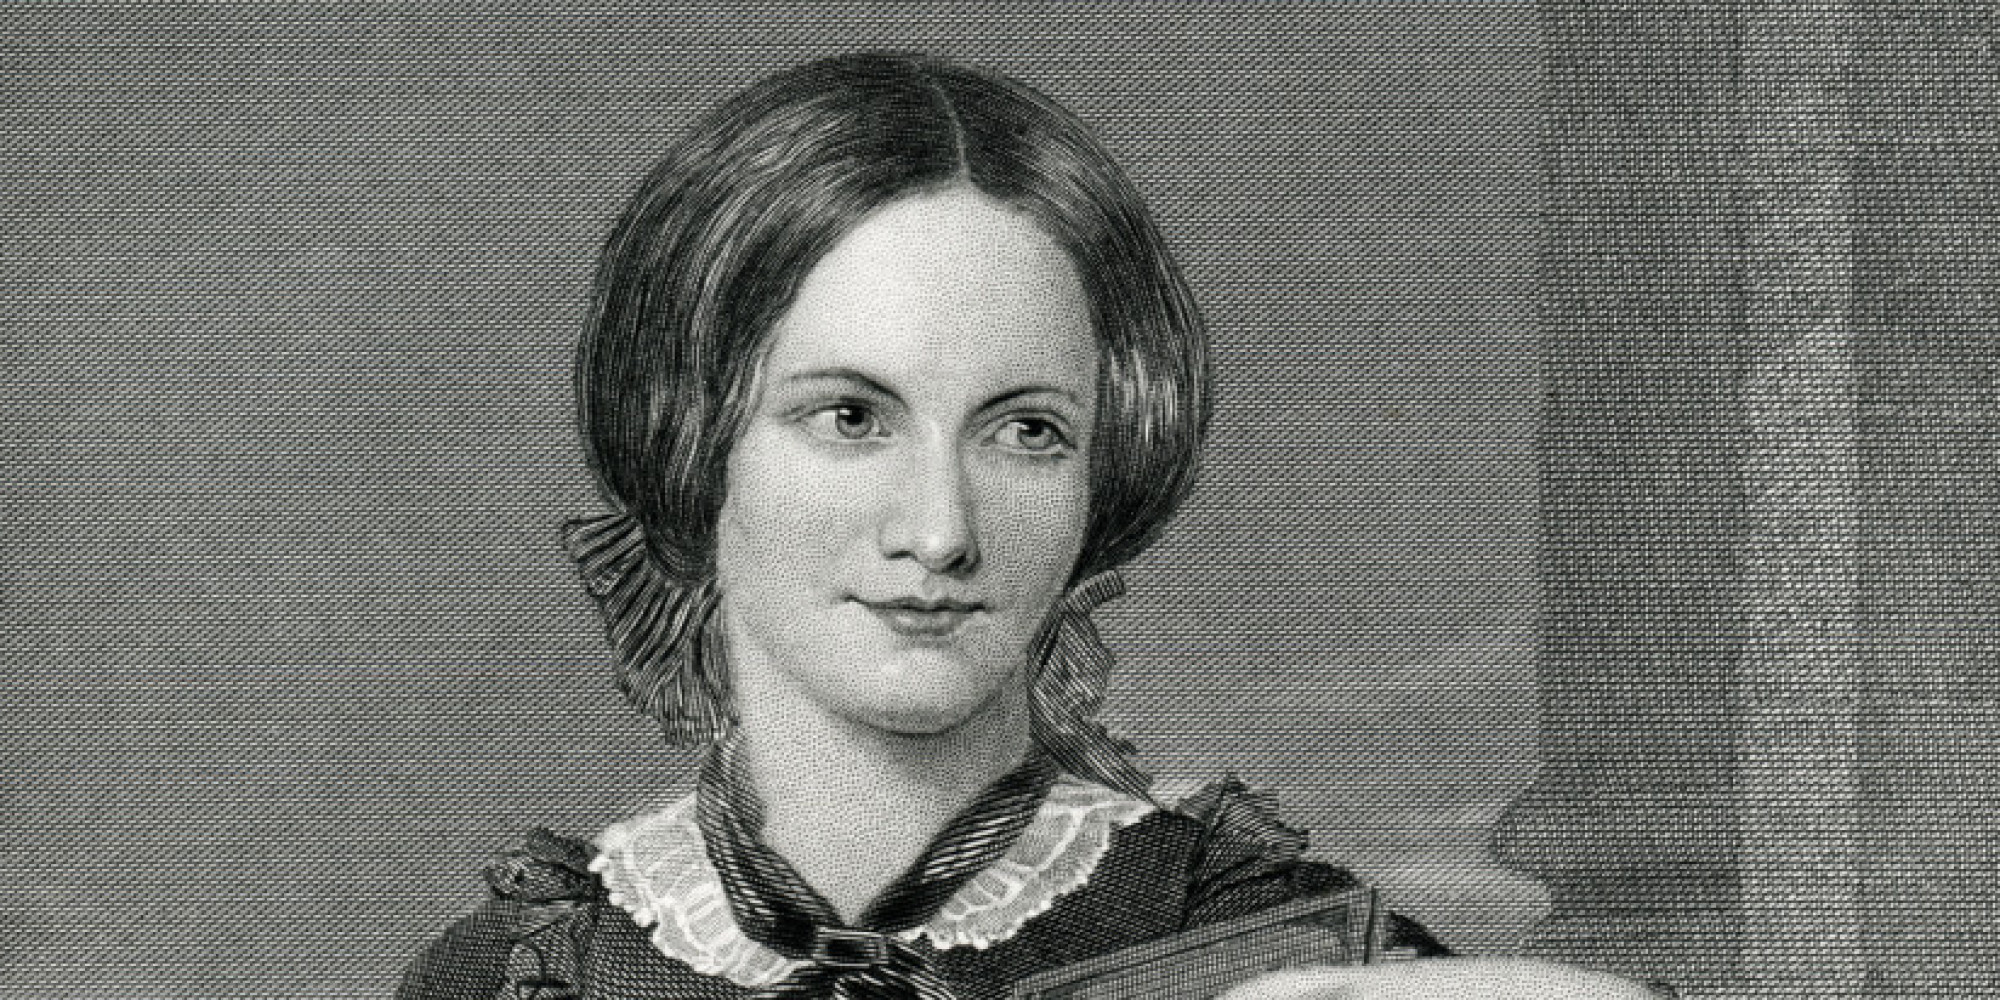 an analysis of charlotte brontes jane eyre Modern literary criticism has long recognized charlotte bronte'sjane eyre  substantive but in my view misleading essay the brontes and  jane eyre is at.